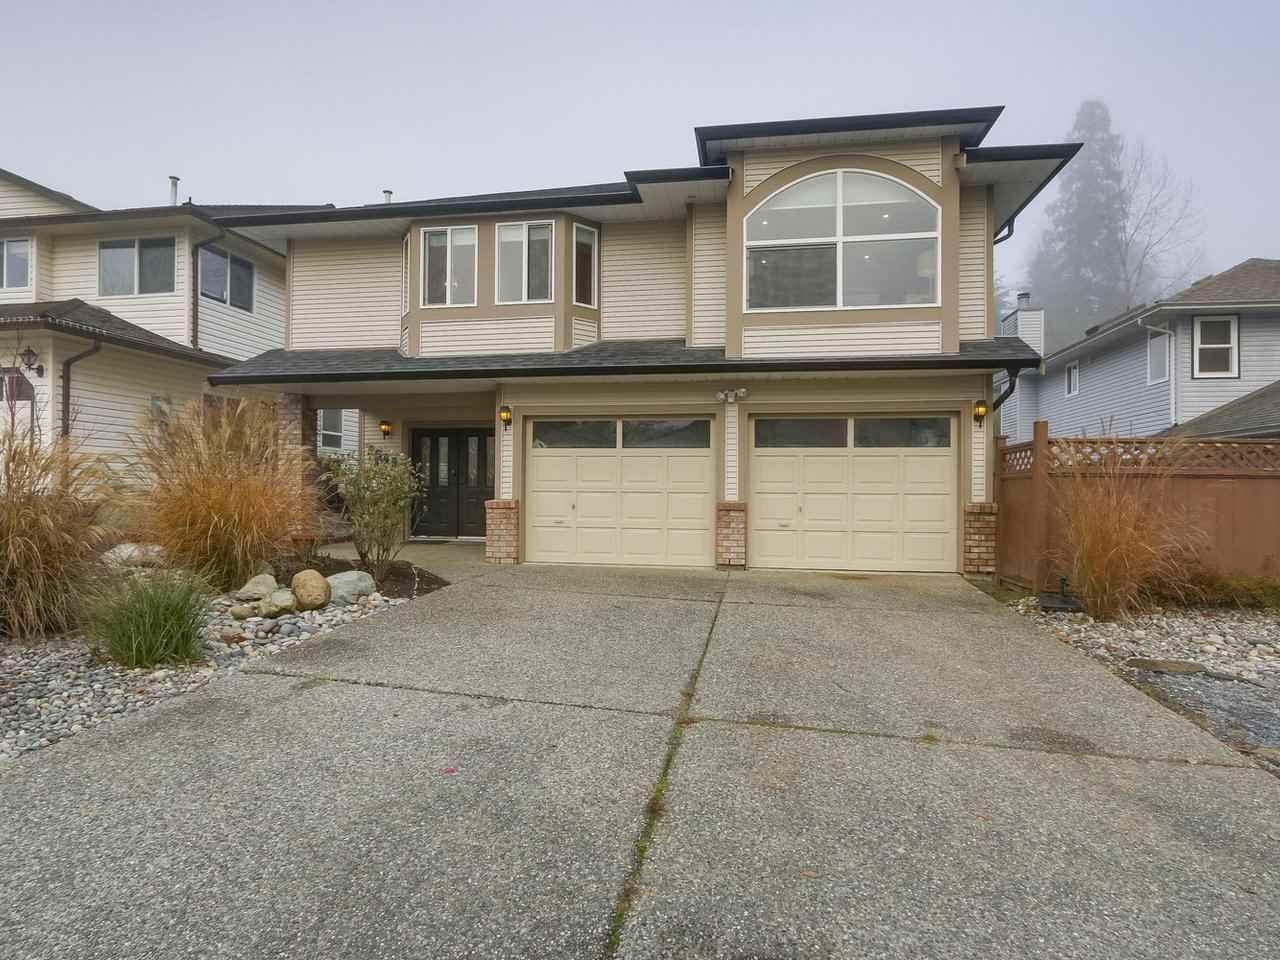 Main Photo: 3649 BRACEWELL Place in Port Coquitlam: Oxford Heights House for sale : MLS®# R2227267